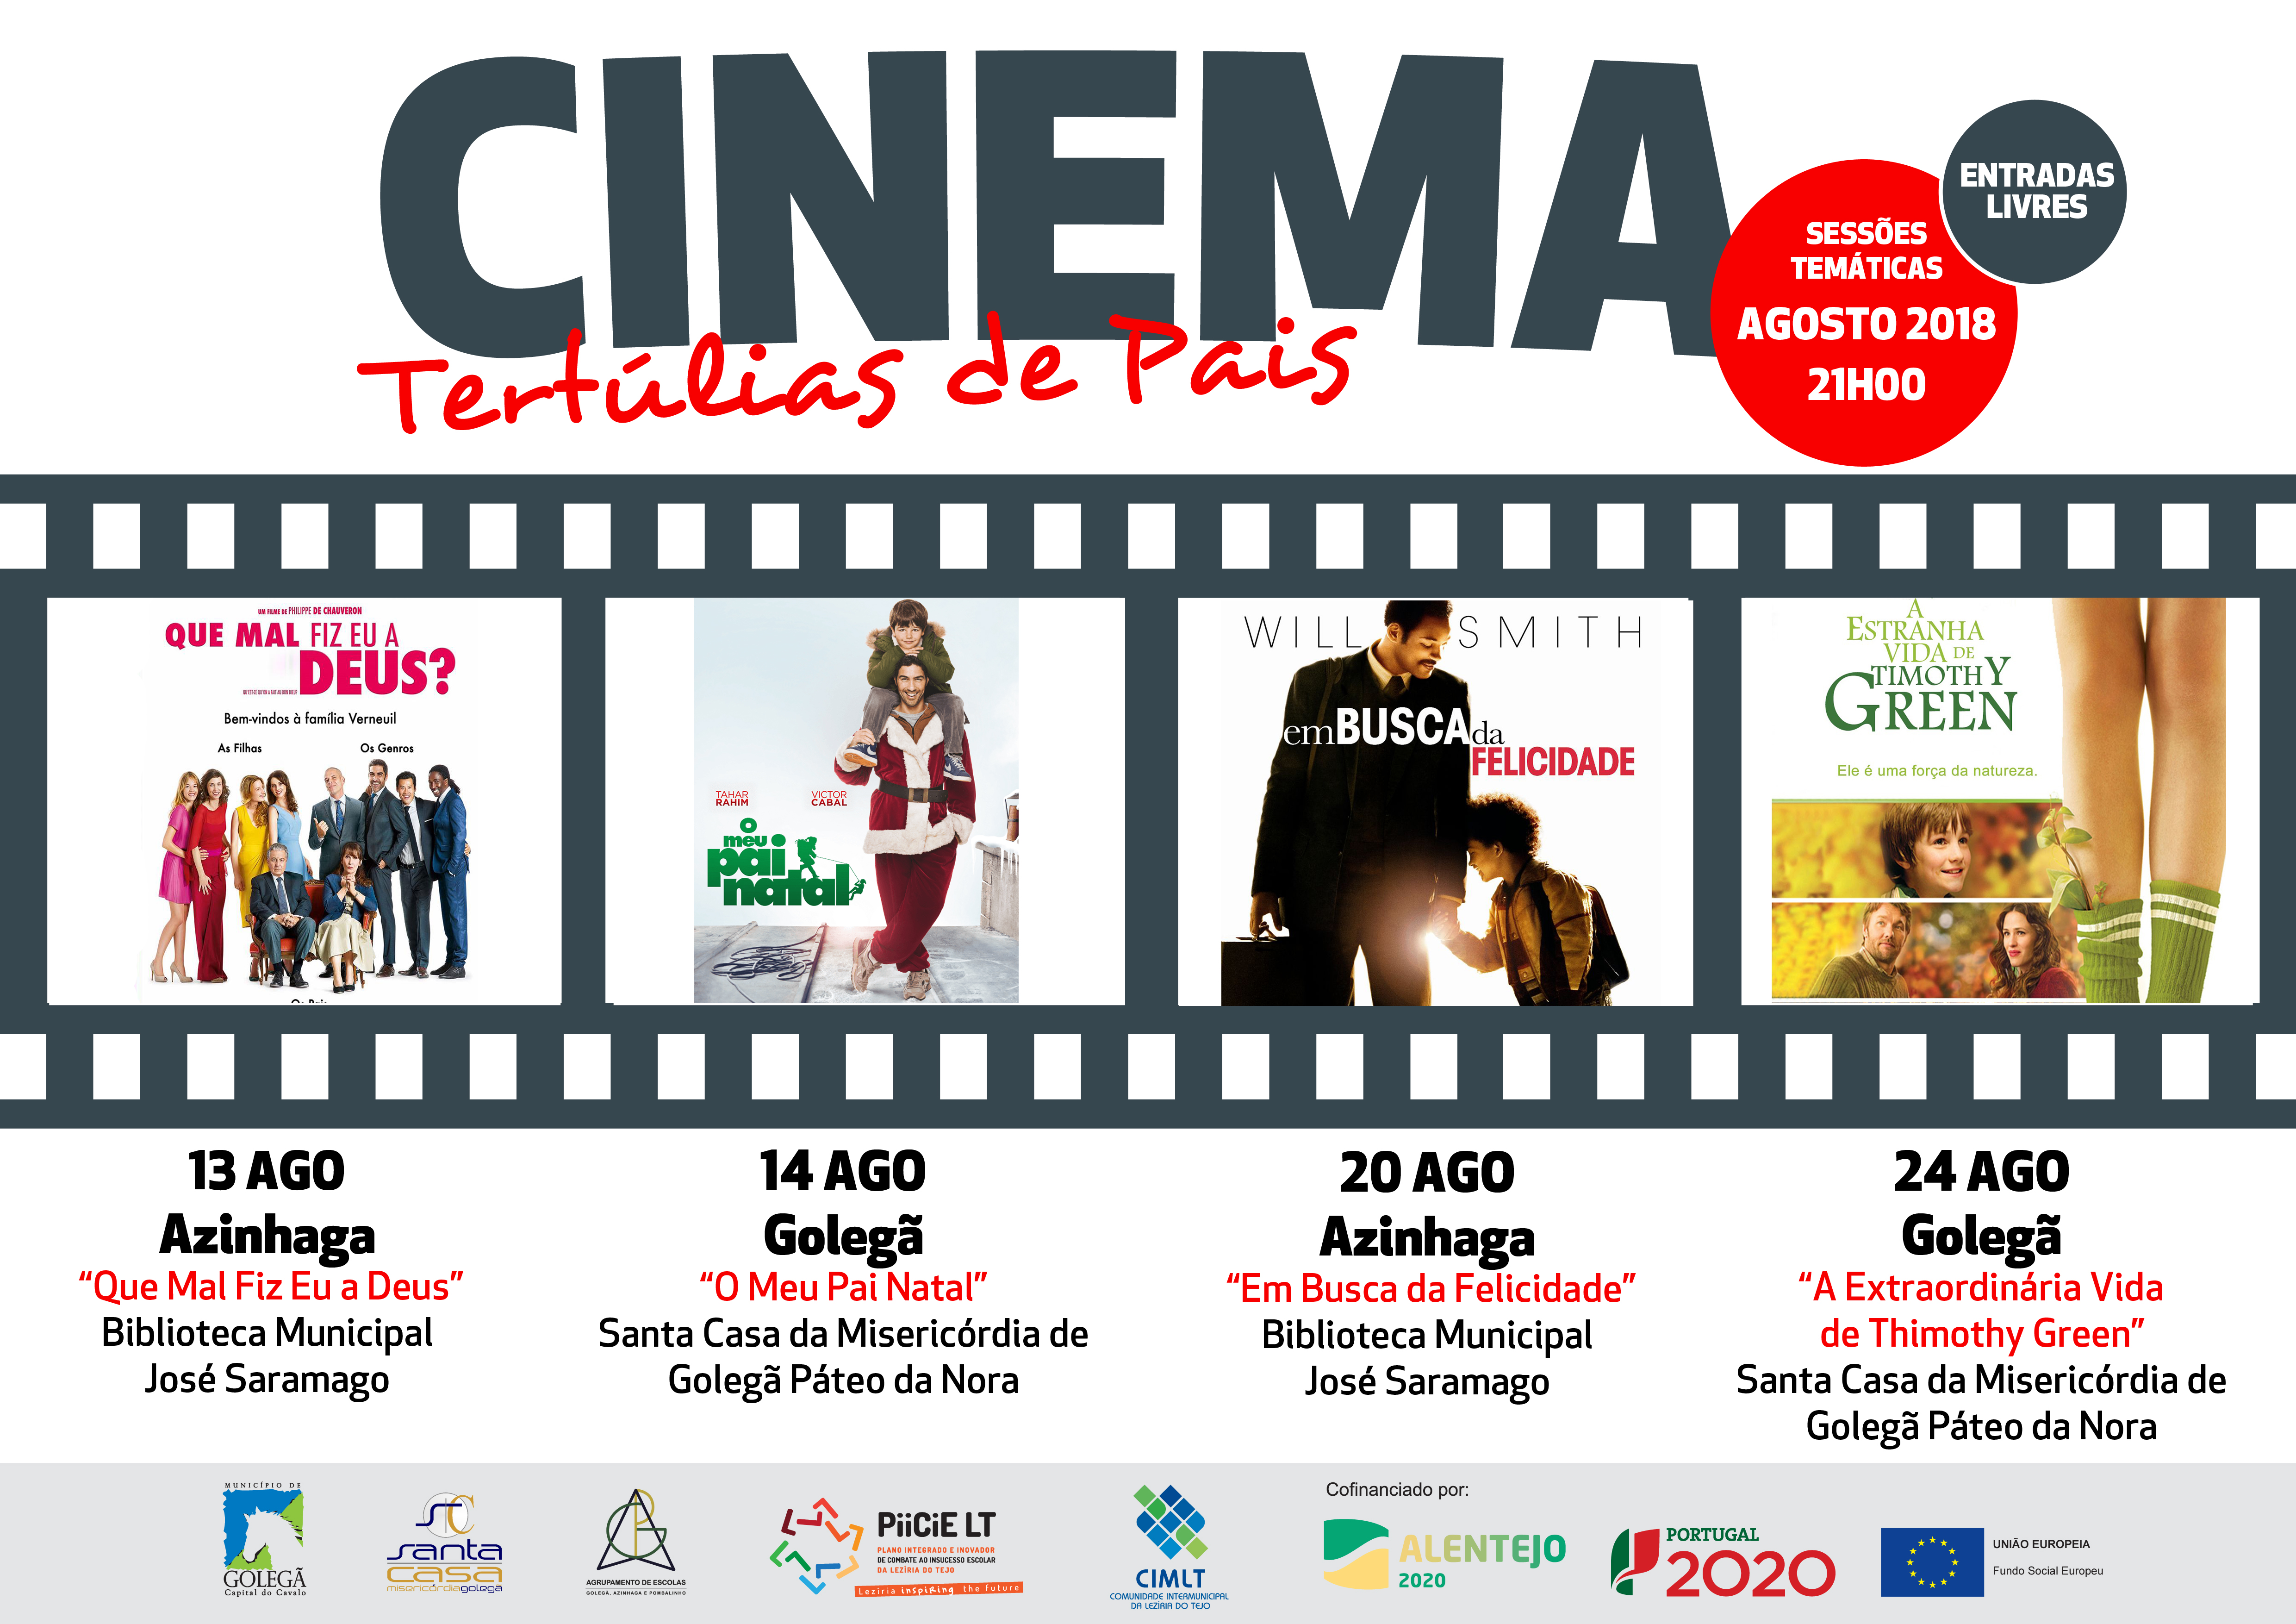 Cinema - Tertúlias de pais